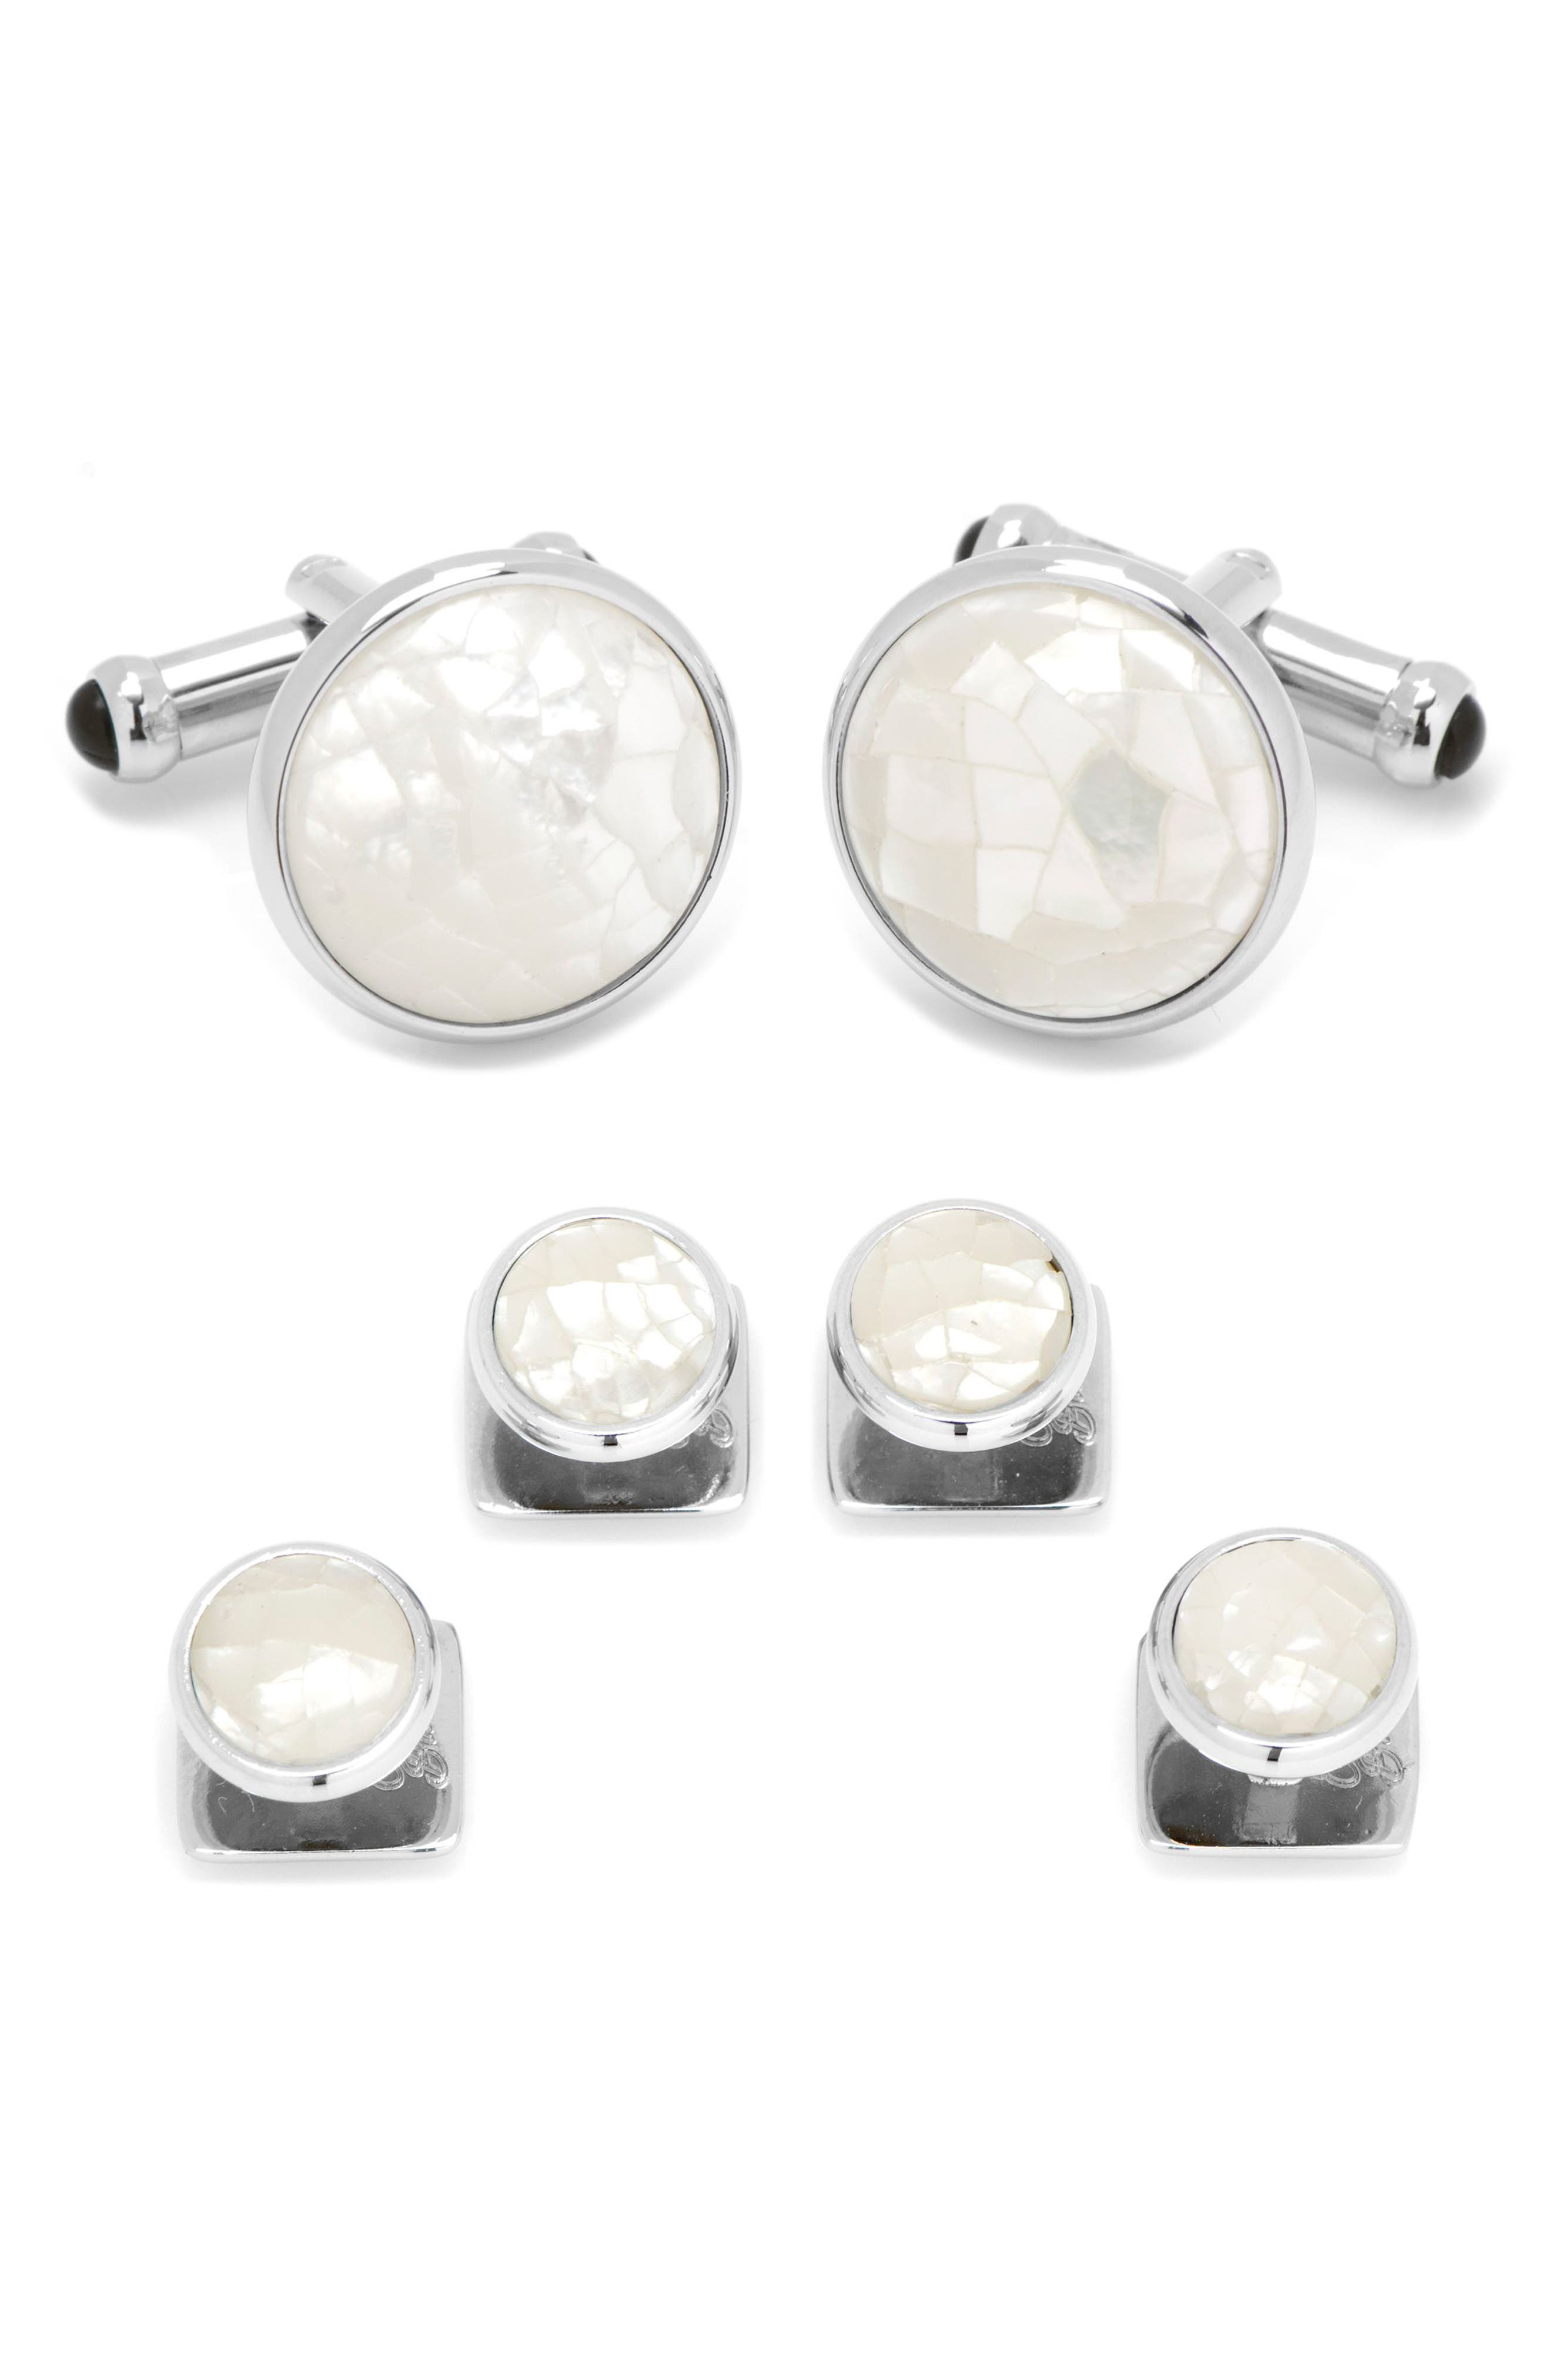 Mother-of-Pearl Cuff Link & Shirt Stud Set,                         Main,                         color, Silver/ White